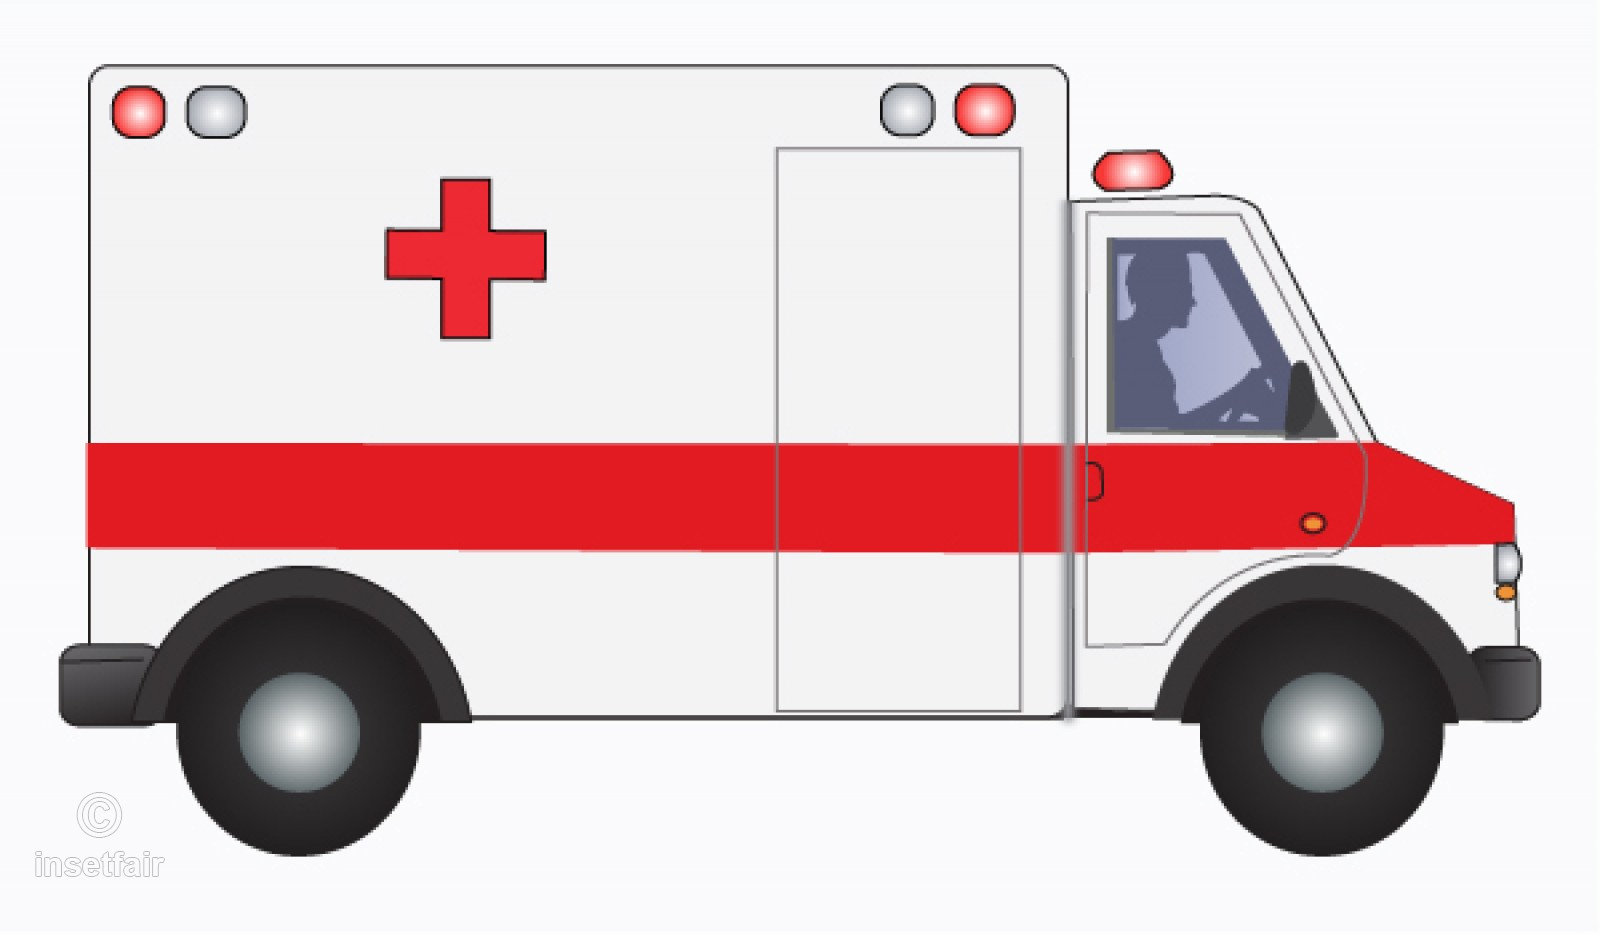 Ambulance pictures clipart vector free library Clipart Ambulance with driver side view vector file vector free library